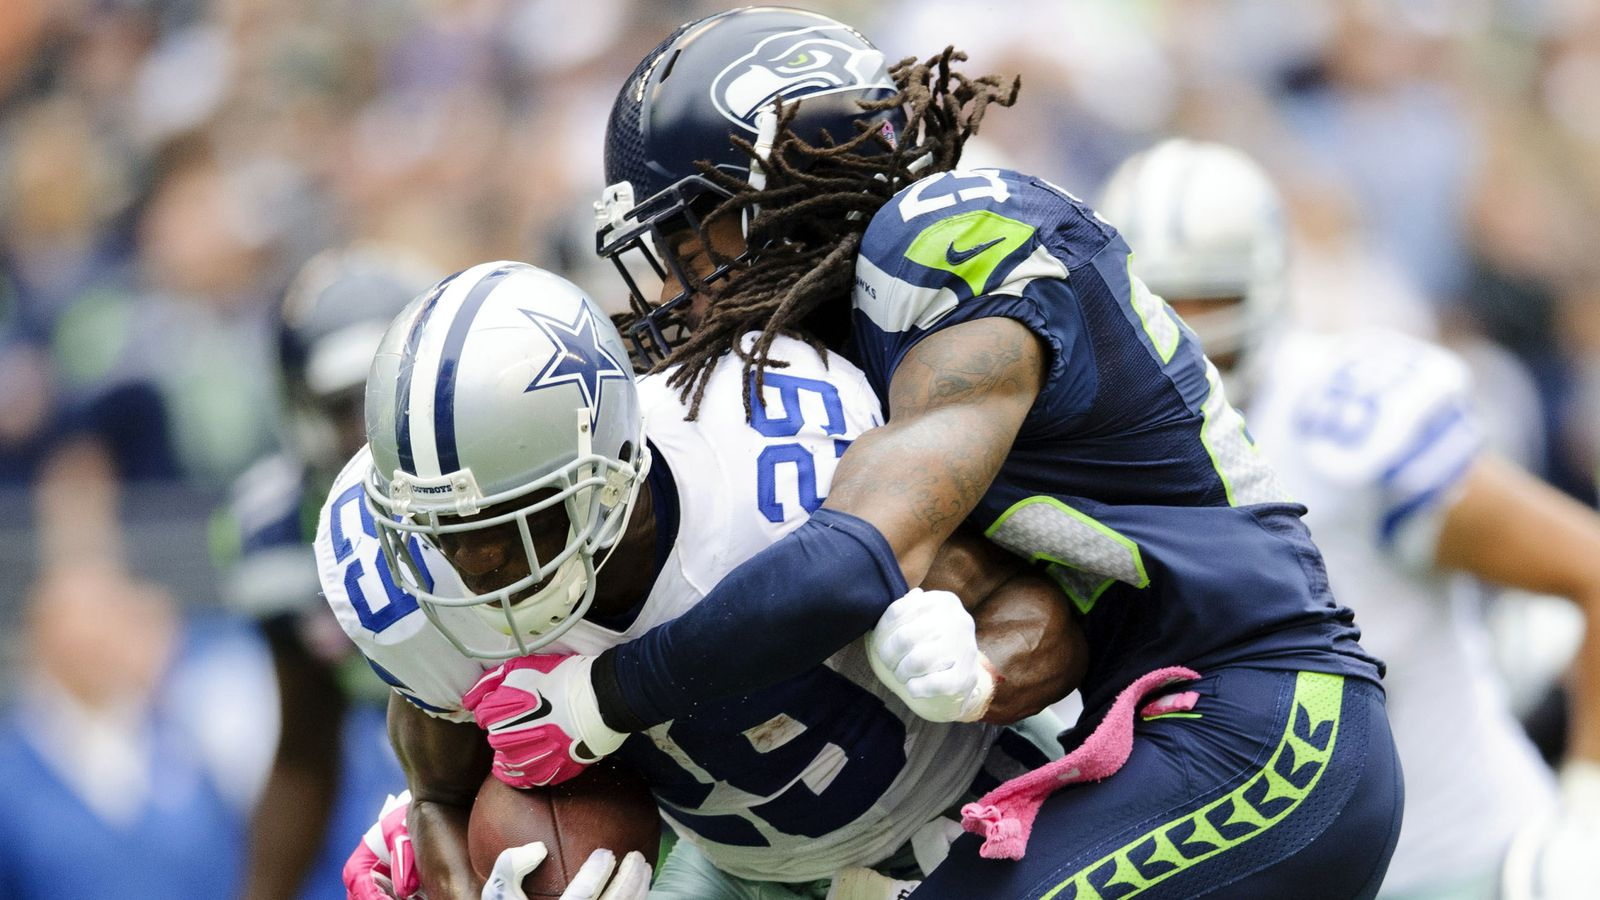 seahawks vs cowboys score ufc online streaming